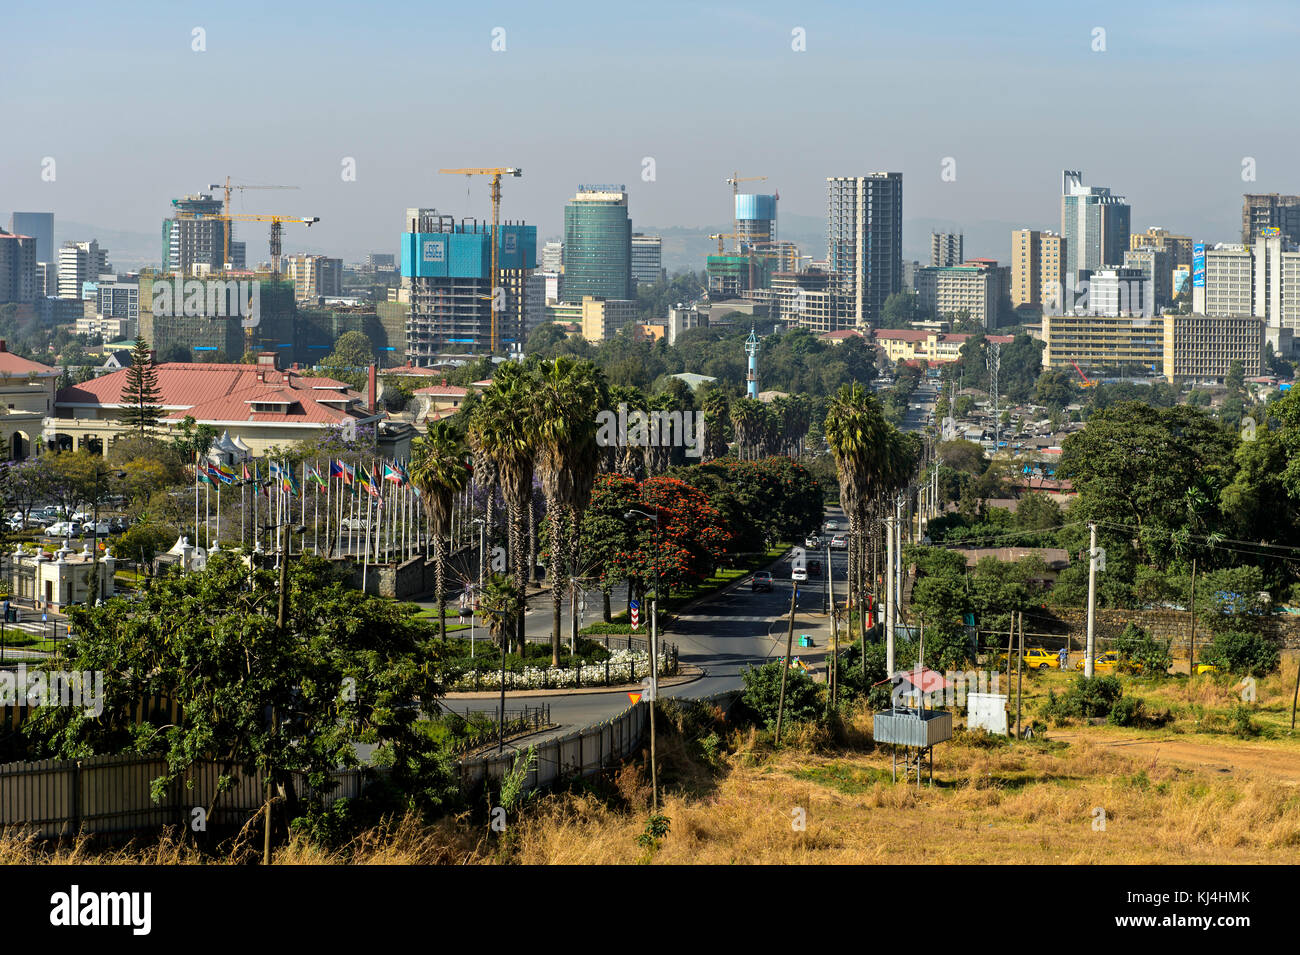 View of the skyline of Addis Ababa, Ethiopia - Stock Image